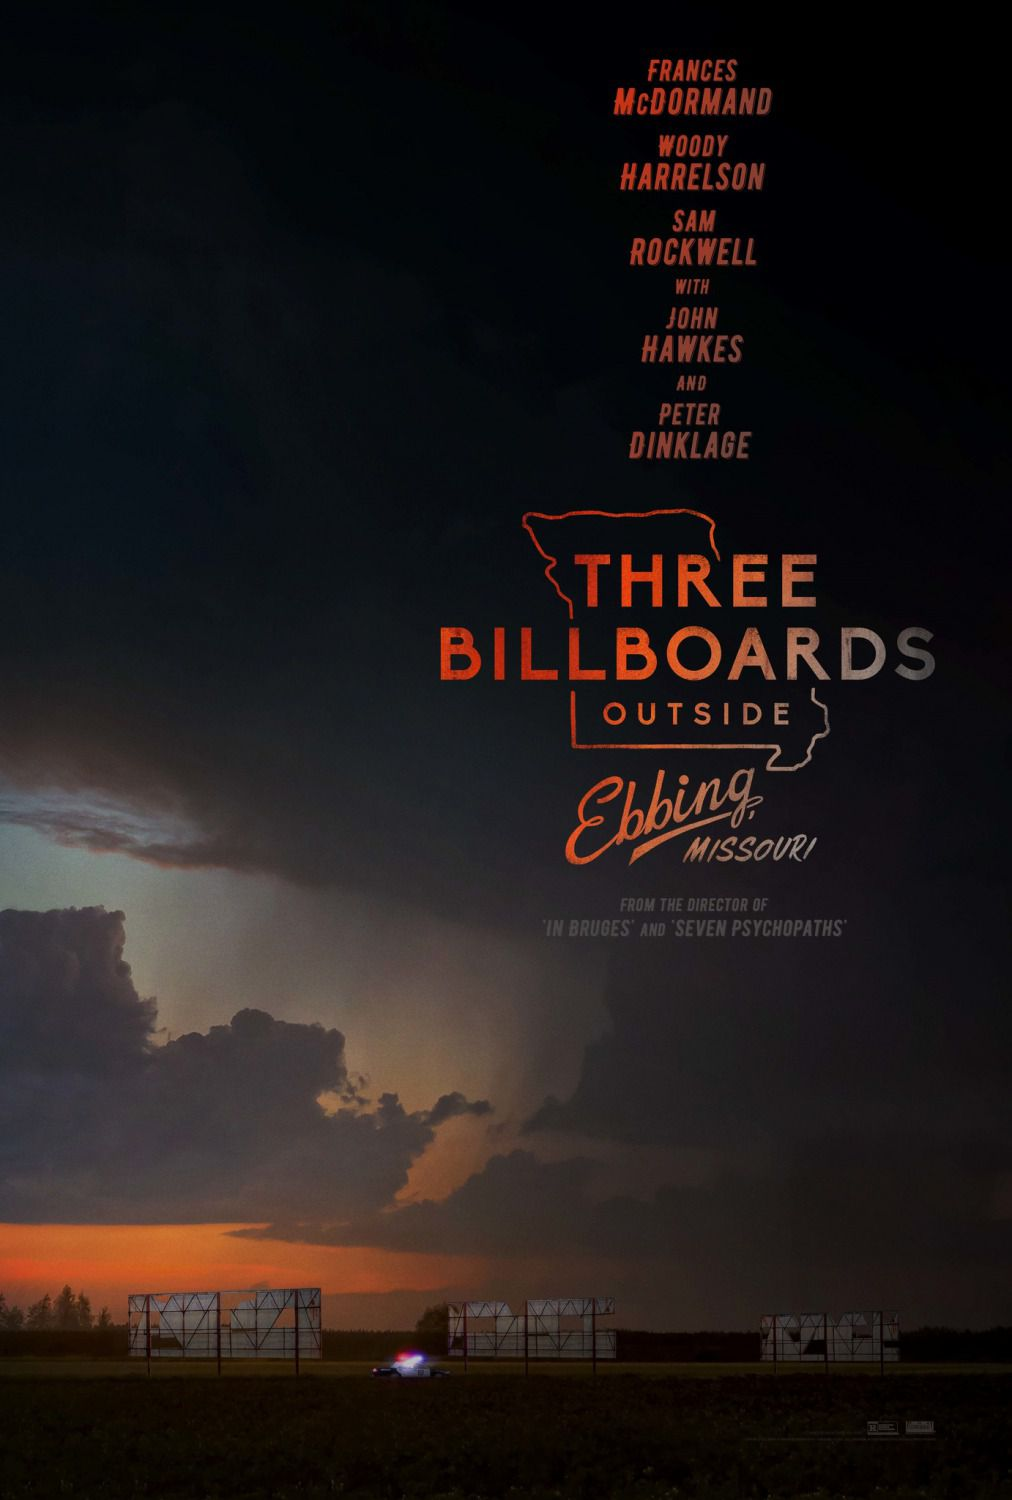 3 Billboards outside Ebbing Missouri - poster